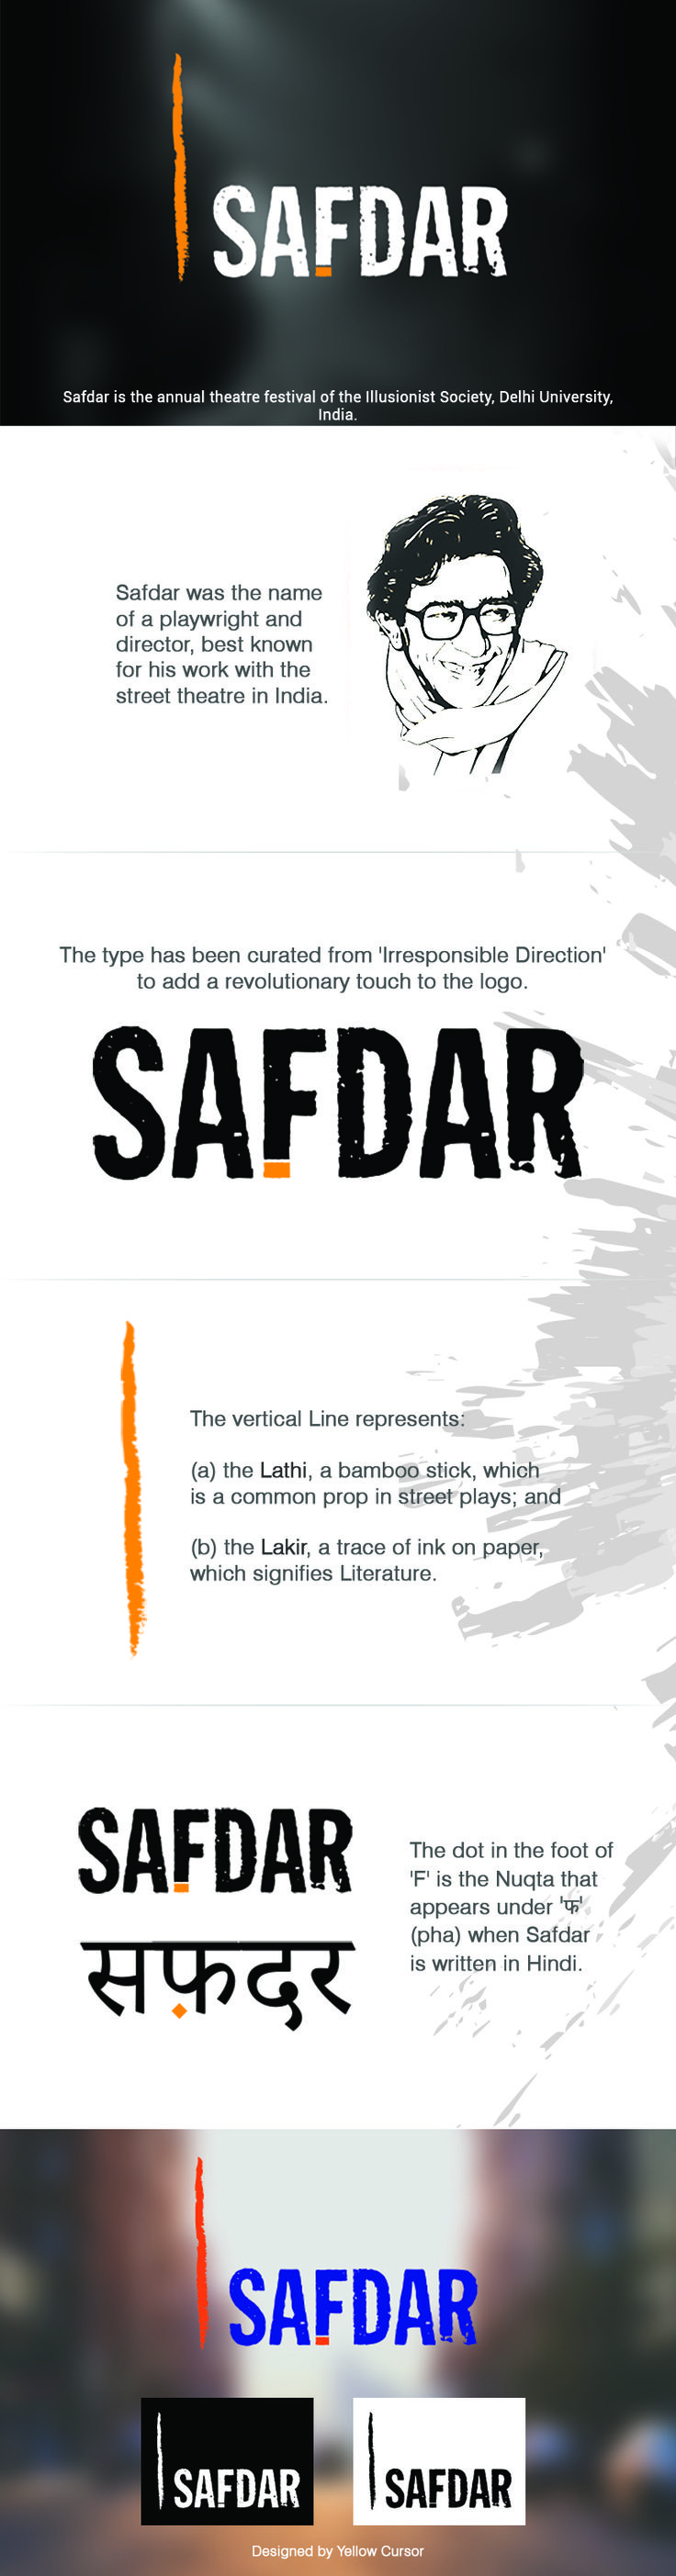 The Logo for Safdar. The Orange Line on the left represents (a) the Lathi, a bamboo stick, which is a common prop in street plays; and (b) the Lakir, a trace of ink on paper, which signifies Literature. The dot in the foot of 'F' is the Nuqta that appears under 'फ' (pha) when Safdar is written in Hindi. Safdar was the name of a playwright and director, best known for his work with street theatre in India.